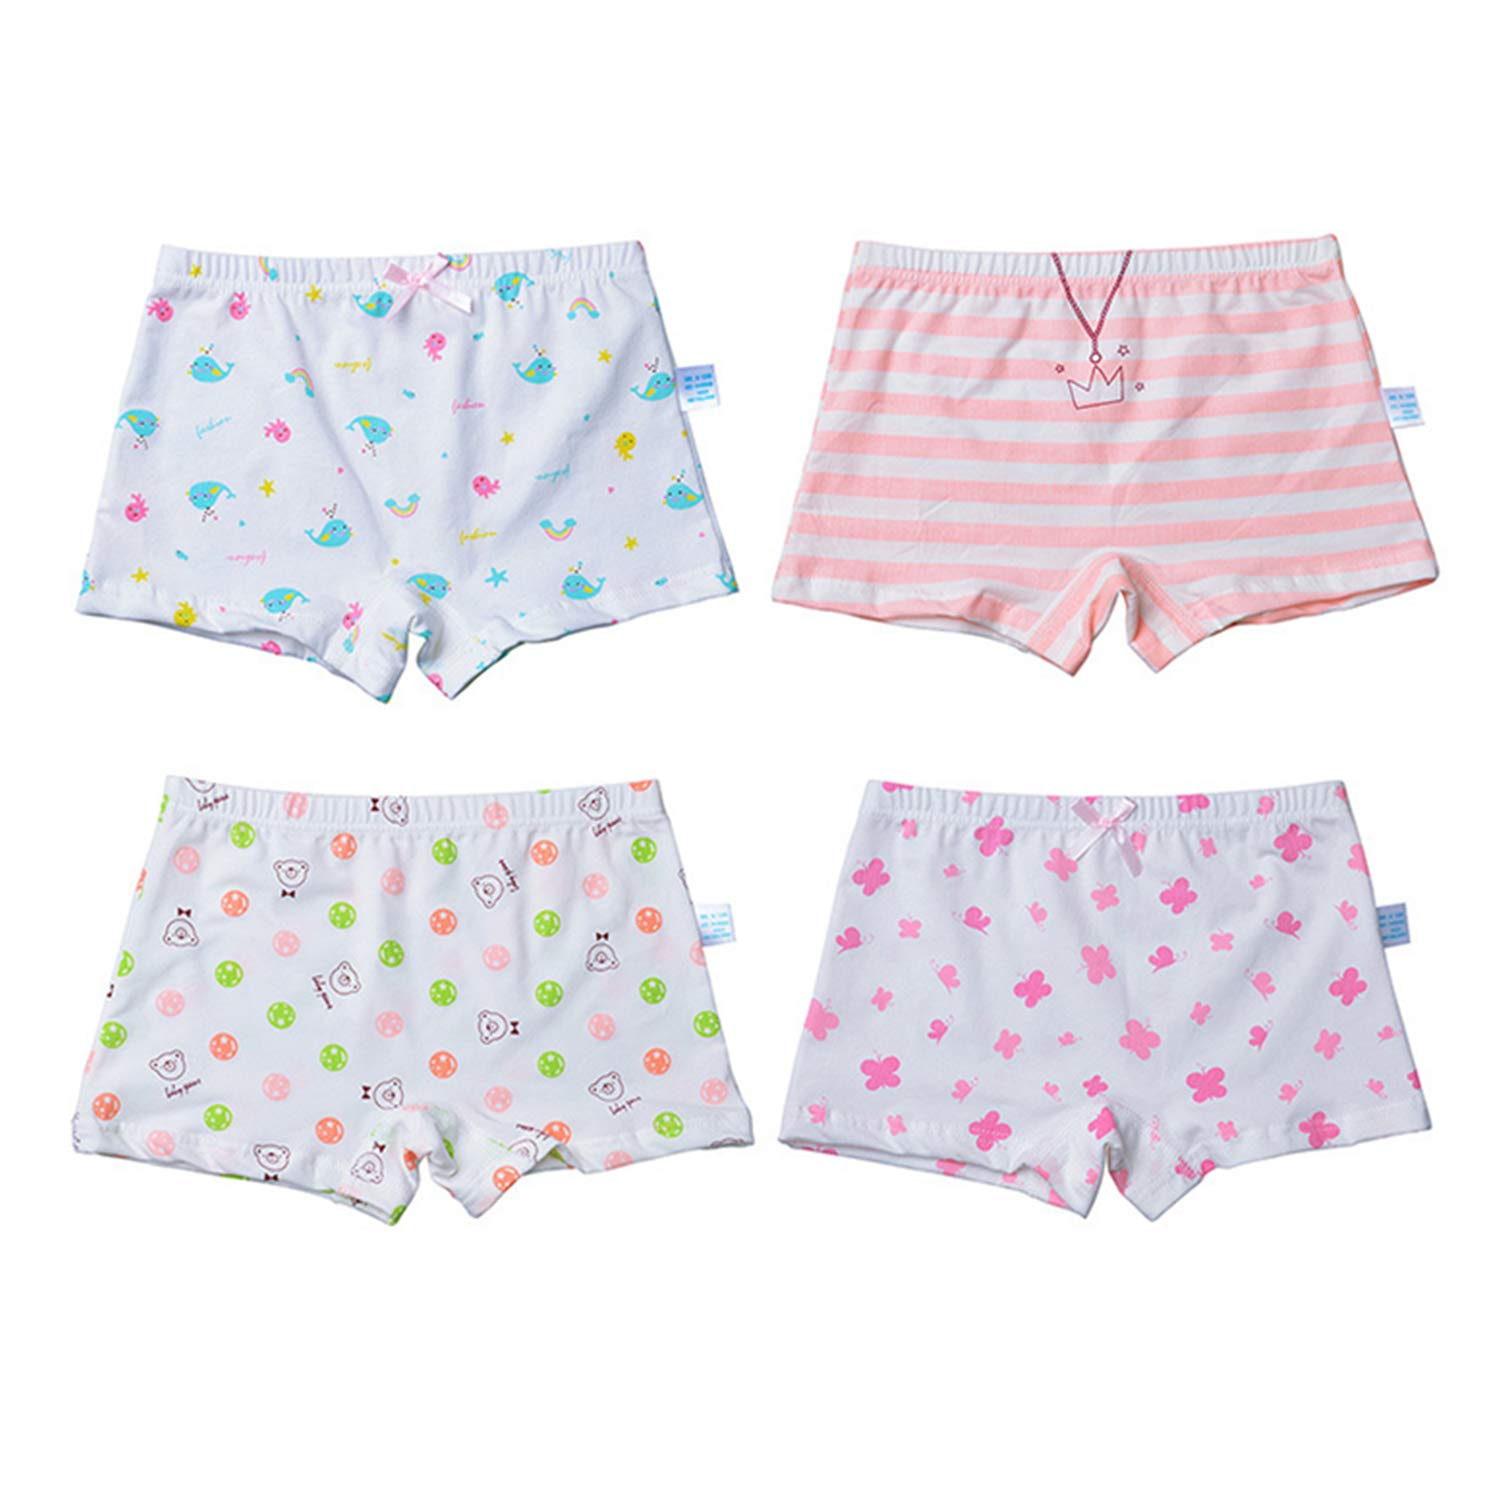 5c0054ef3fb7 Amazon.com: Organic Cotton Boxer Briefs Underwear Set Girls Kids Size 2-12  Years: Clothing